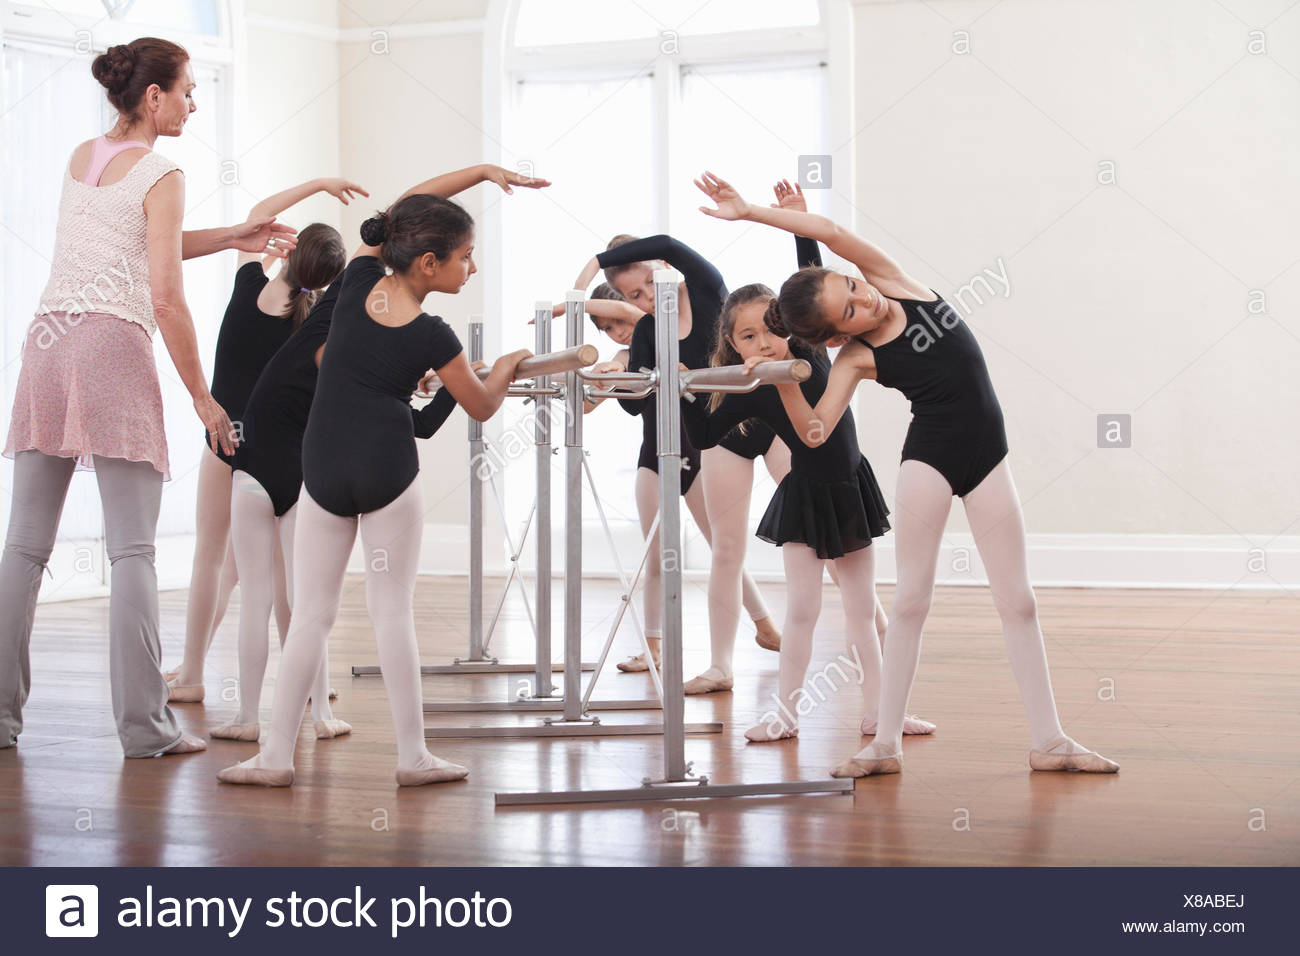 ballet poses Group